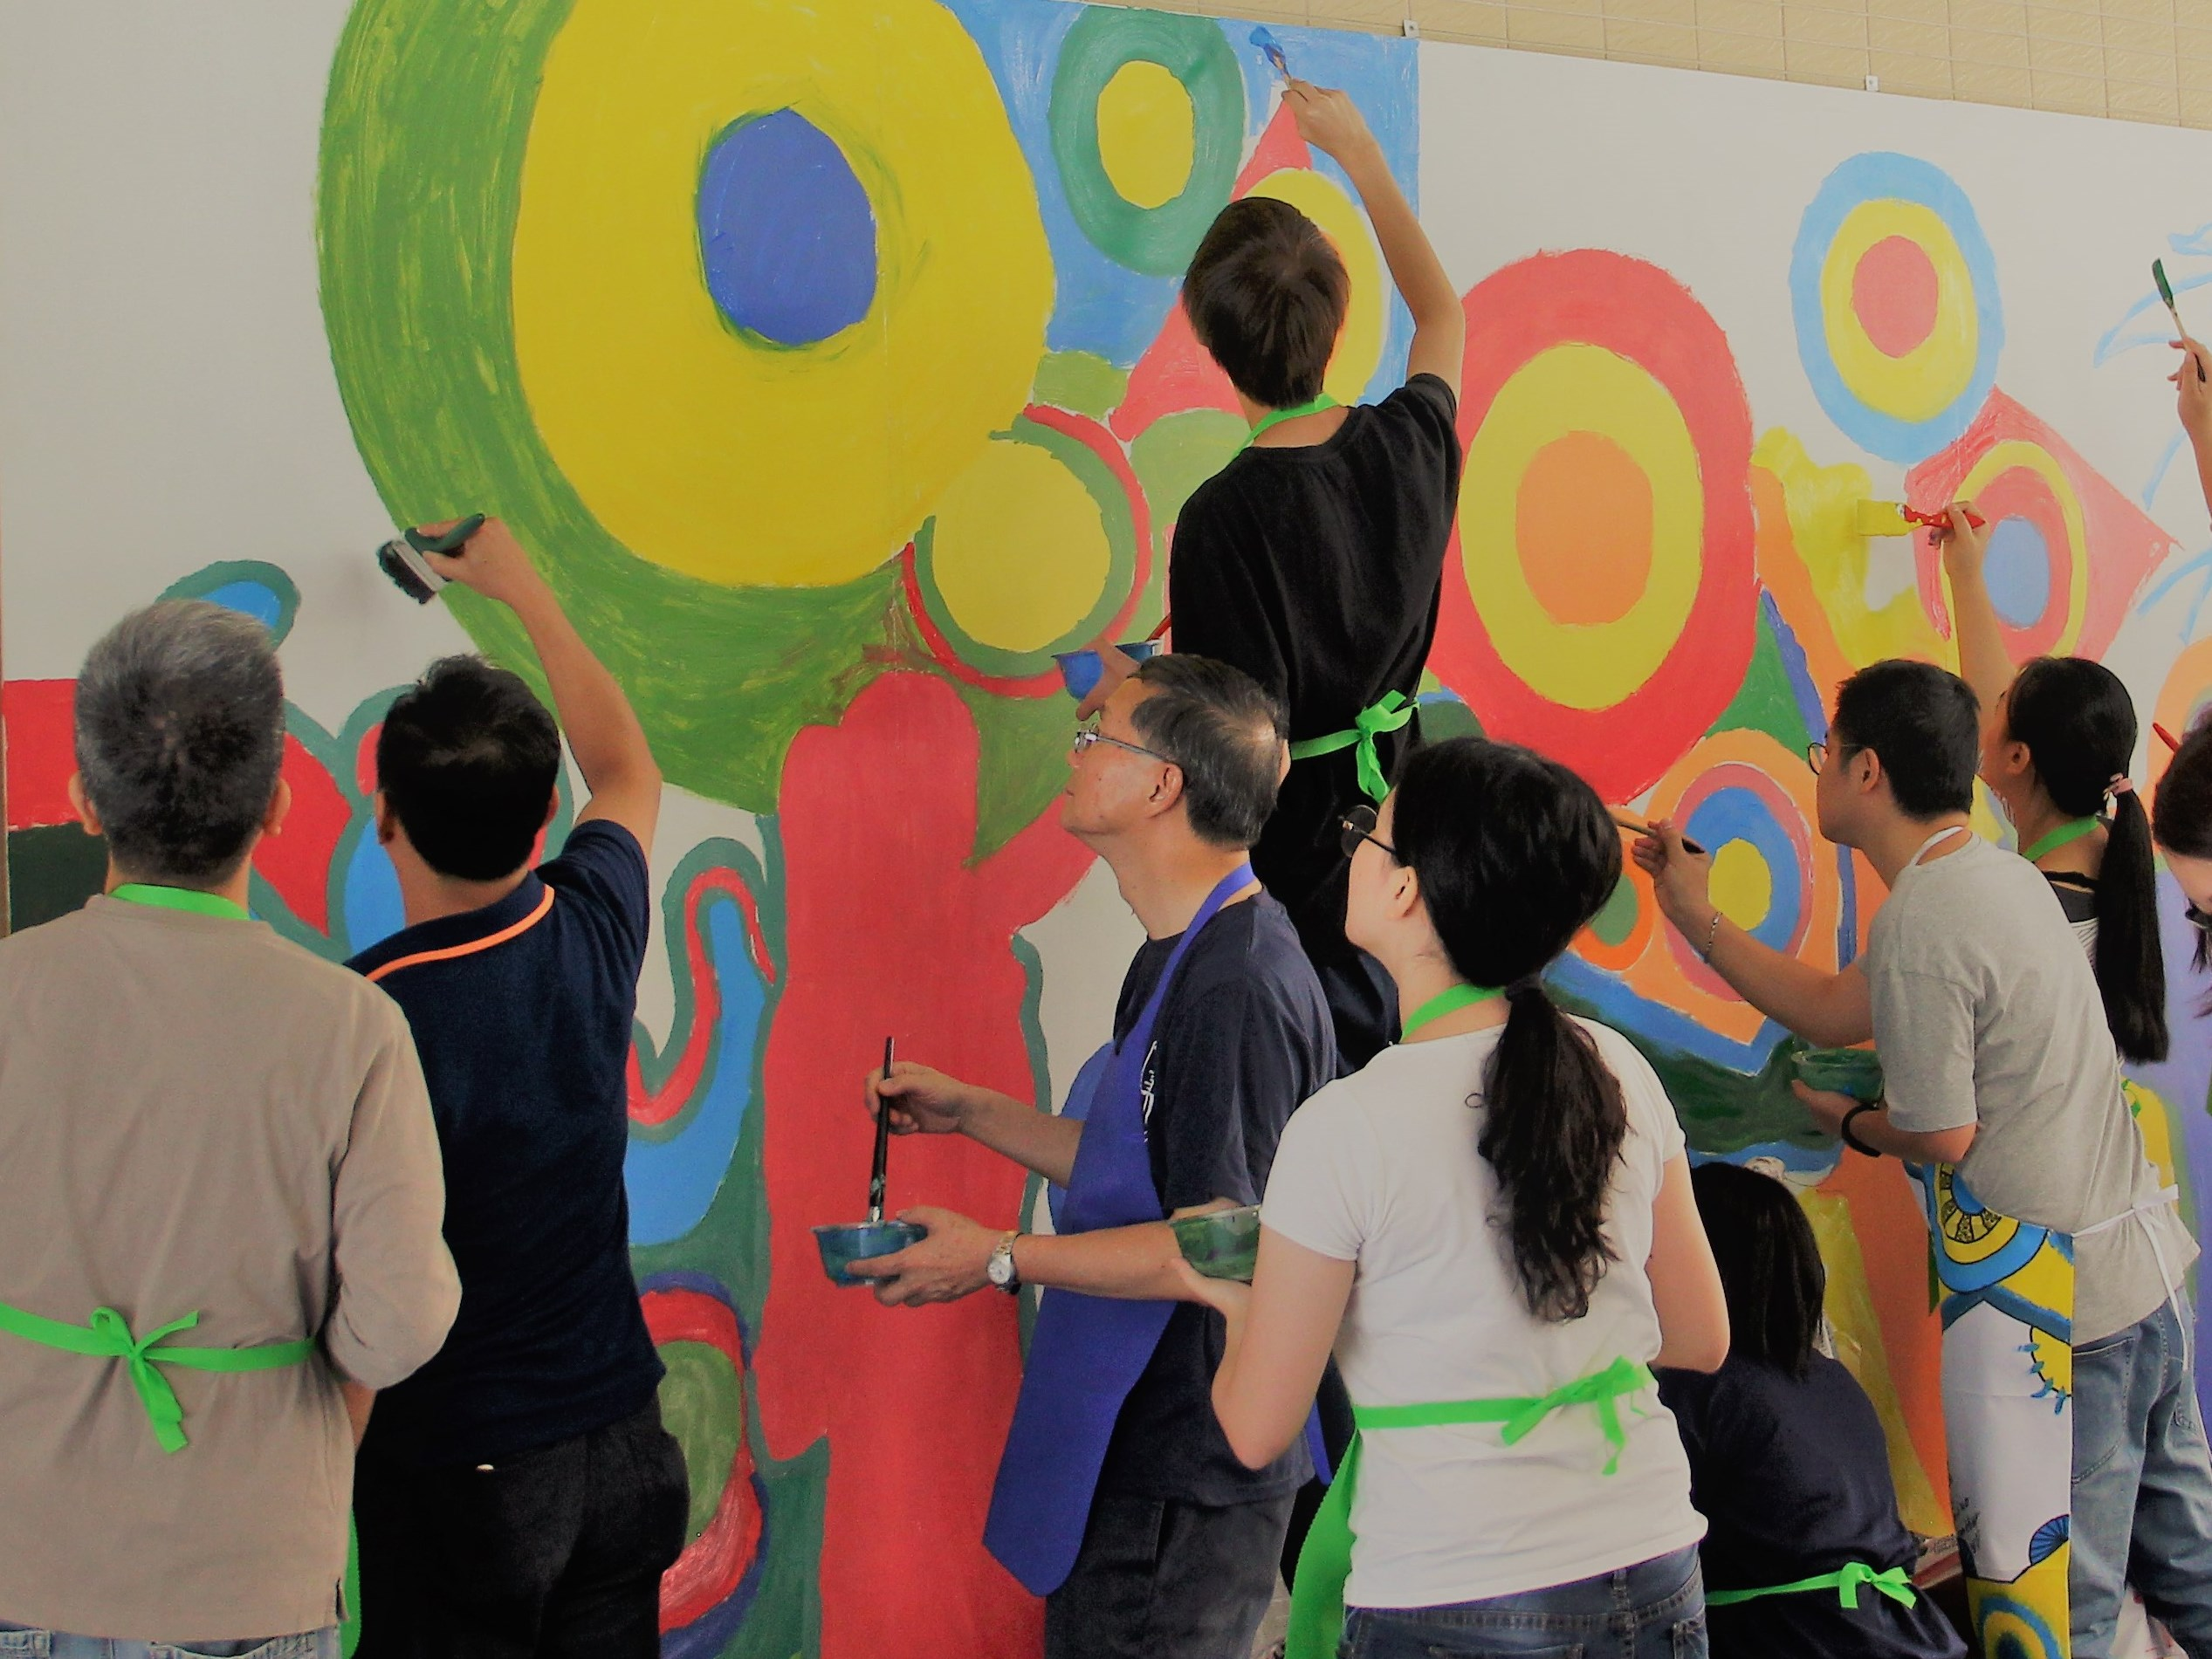 Faculty members and students paint on the wall